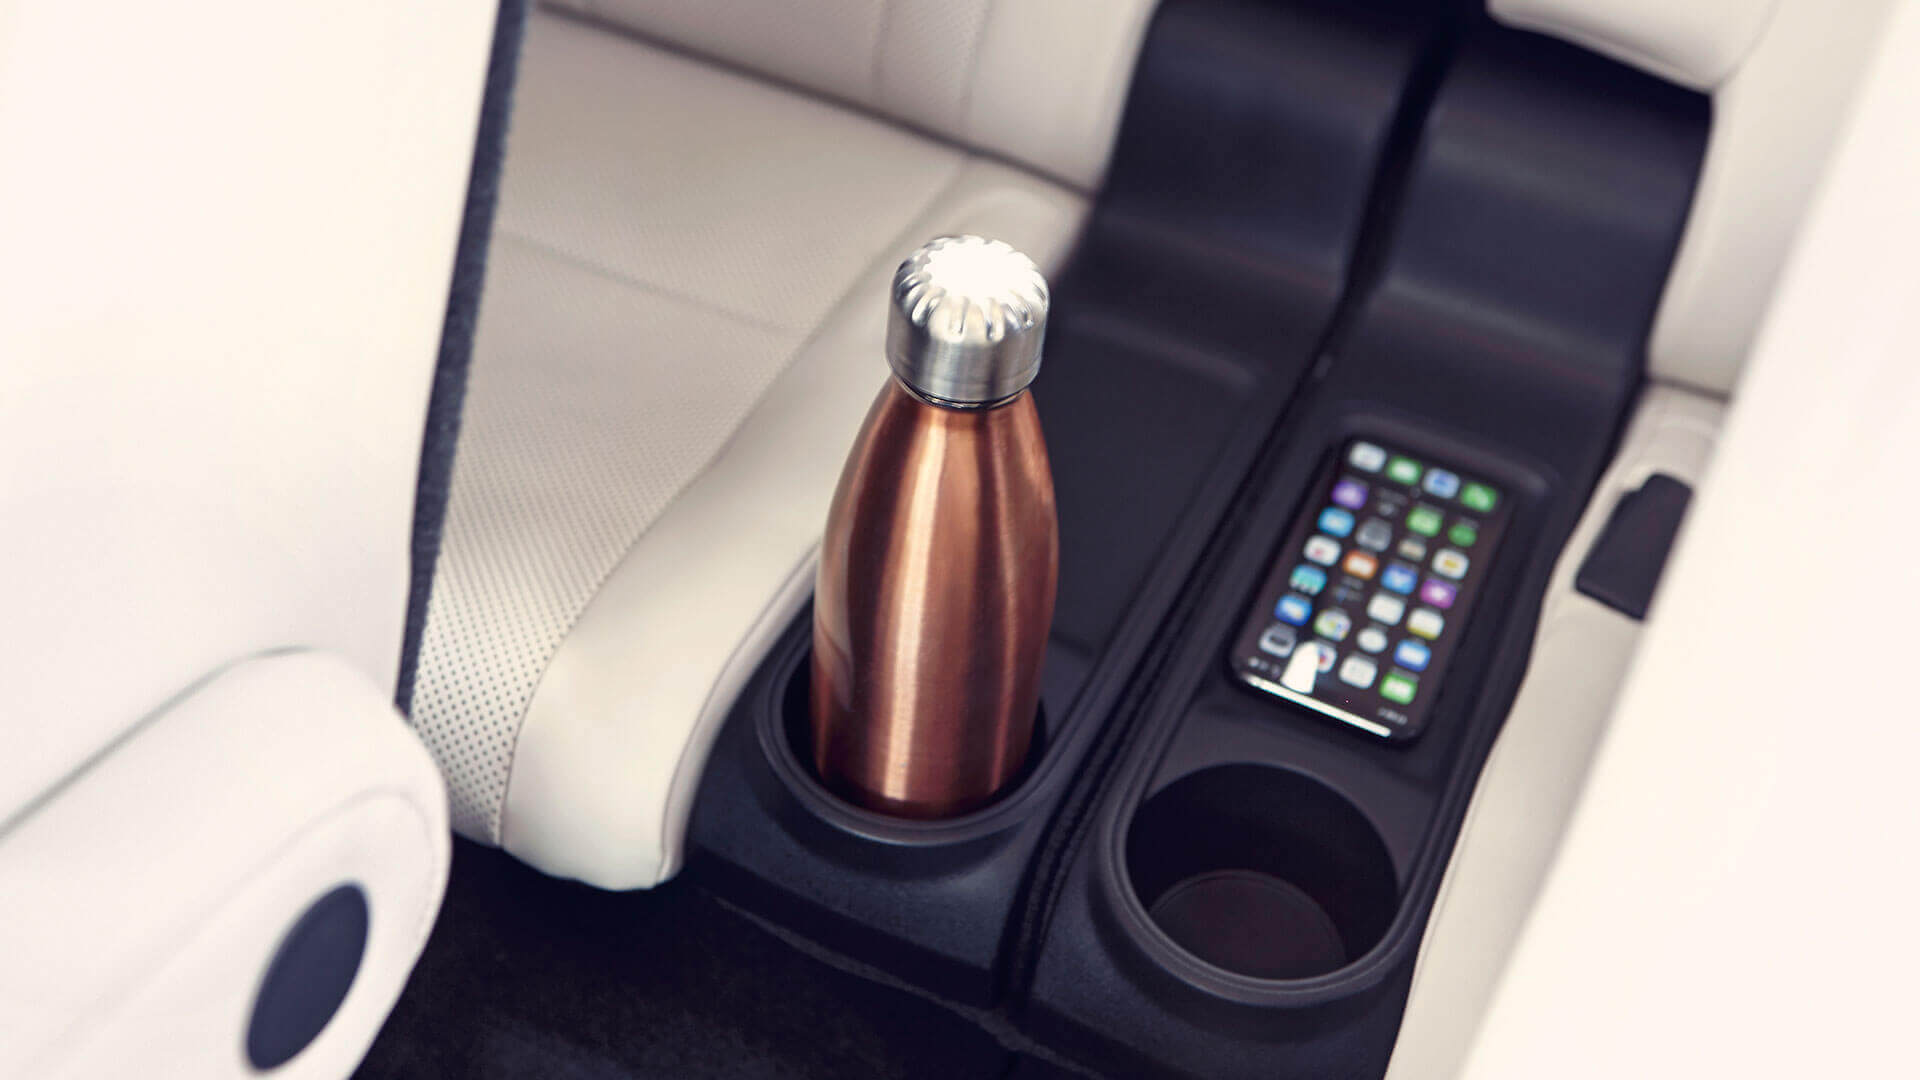 2019 lexus rxl hotspot third row cup holders